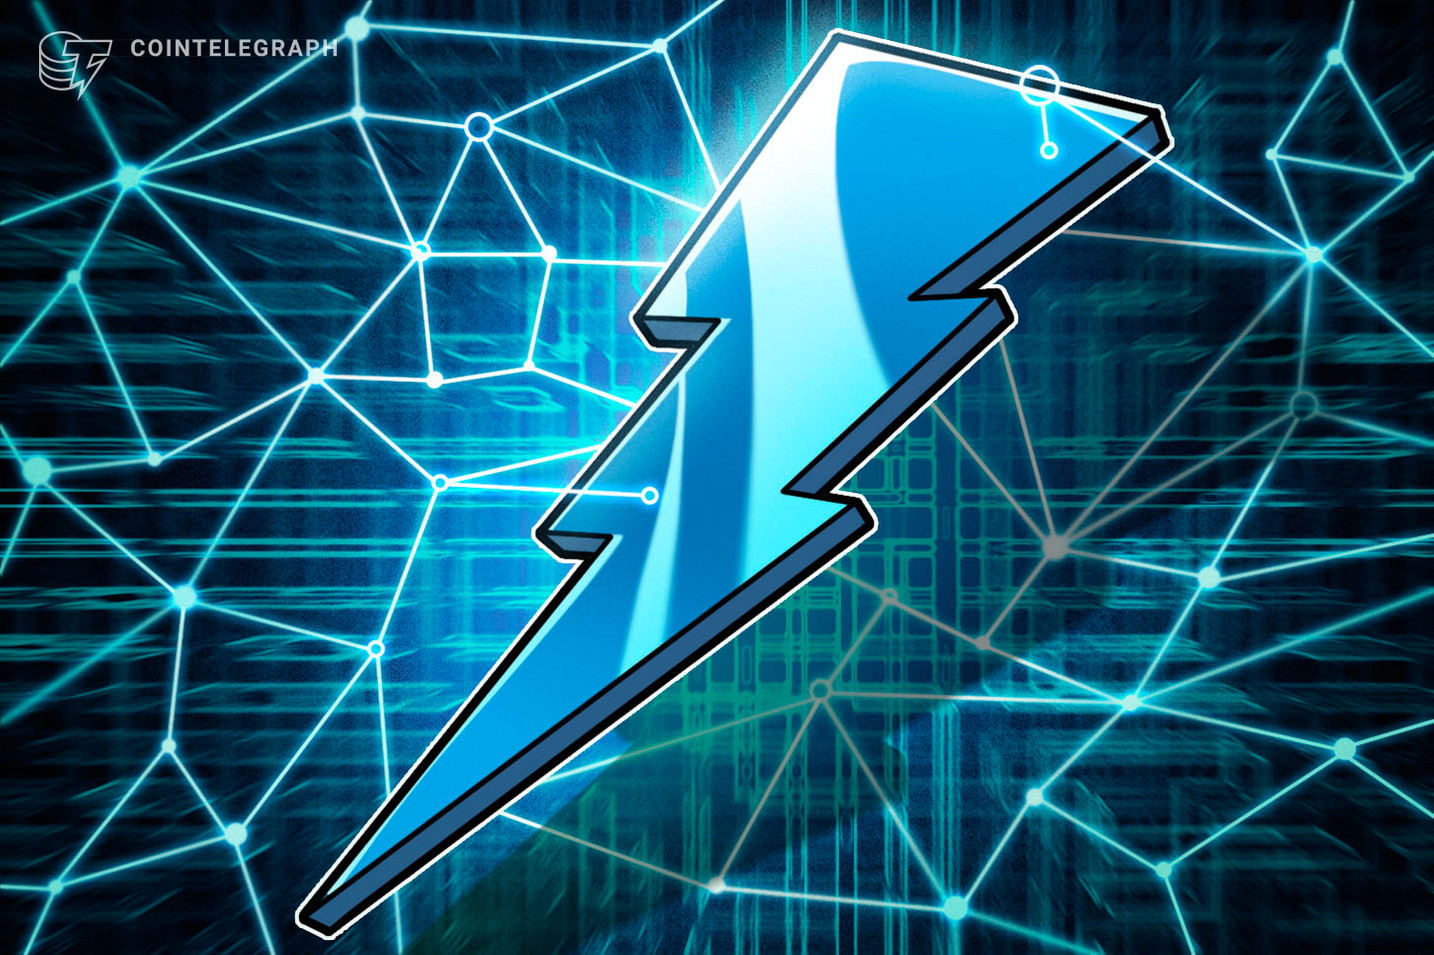 Recorde: 10.000 nós executados no Lightning Network